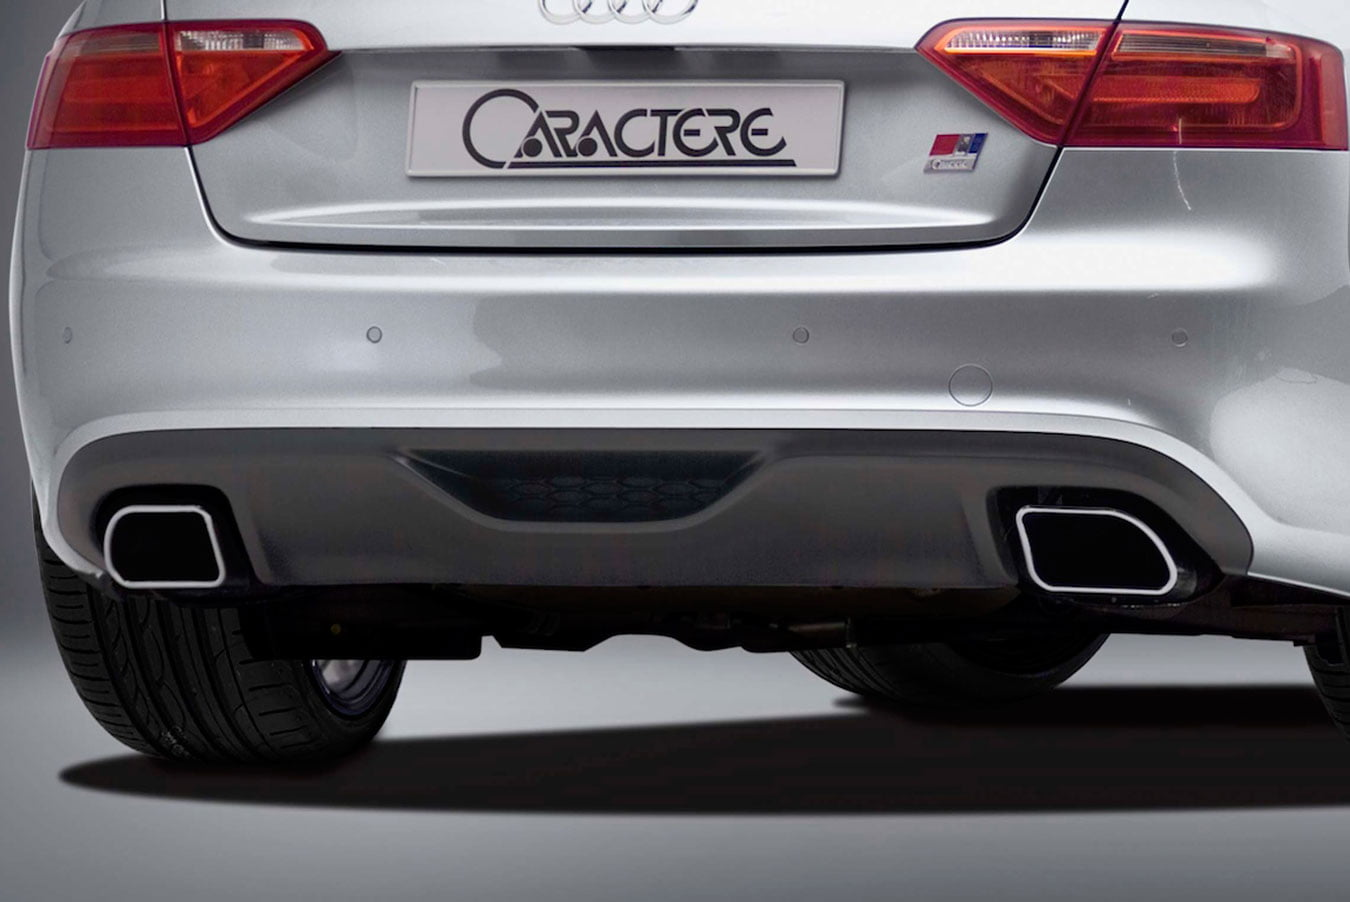 Caractere Rear Diffuser with 2 Mufflers, fits Audi A5 B8.0 2.0 TDI / 1.8 TFSI